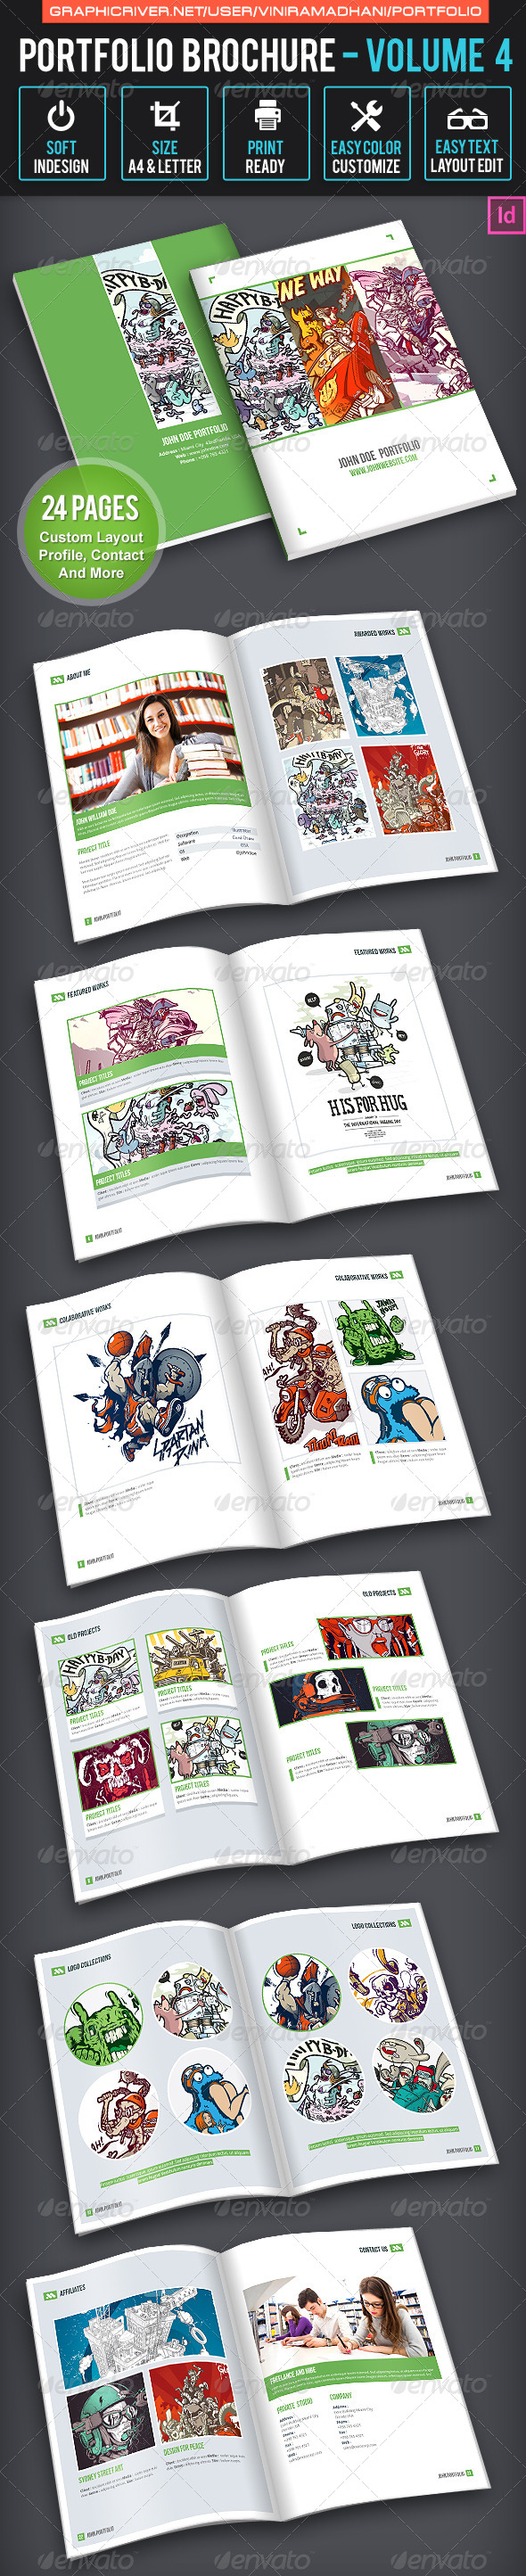 GraphicRiver Portfolio Brochure Volume 4 7605430